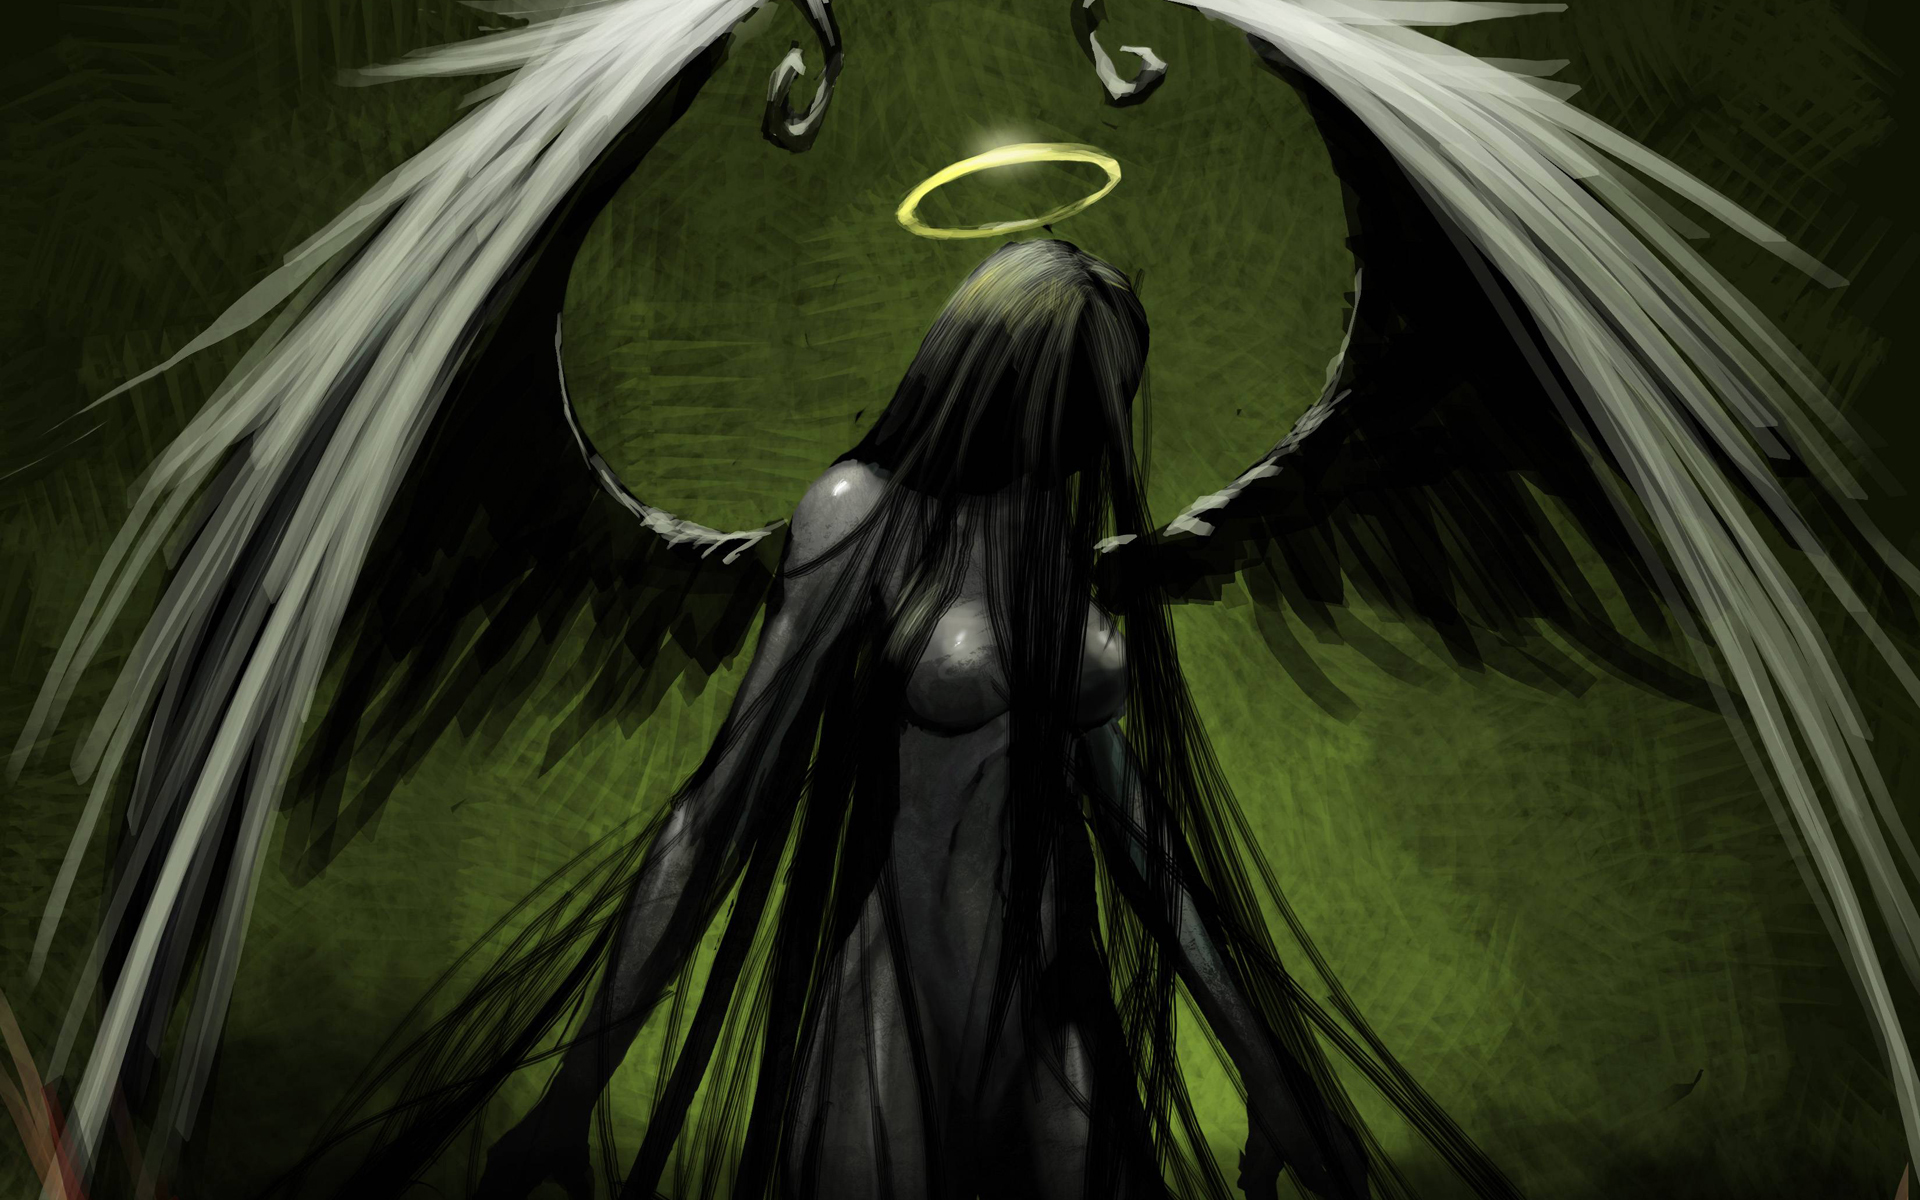 Angel green drawing halo wings gothic dark wallpaper - Dark gothic angel wallpaper ...